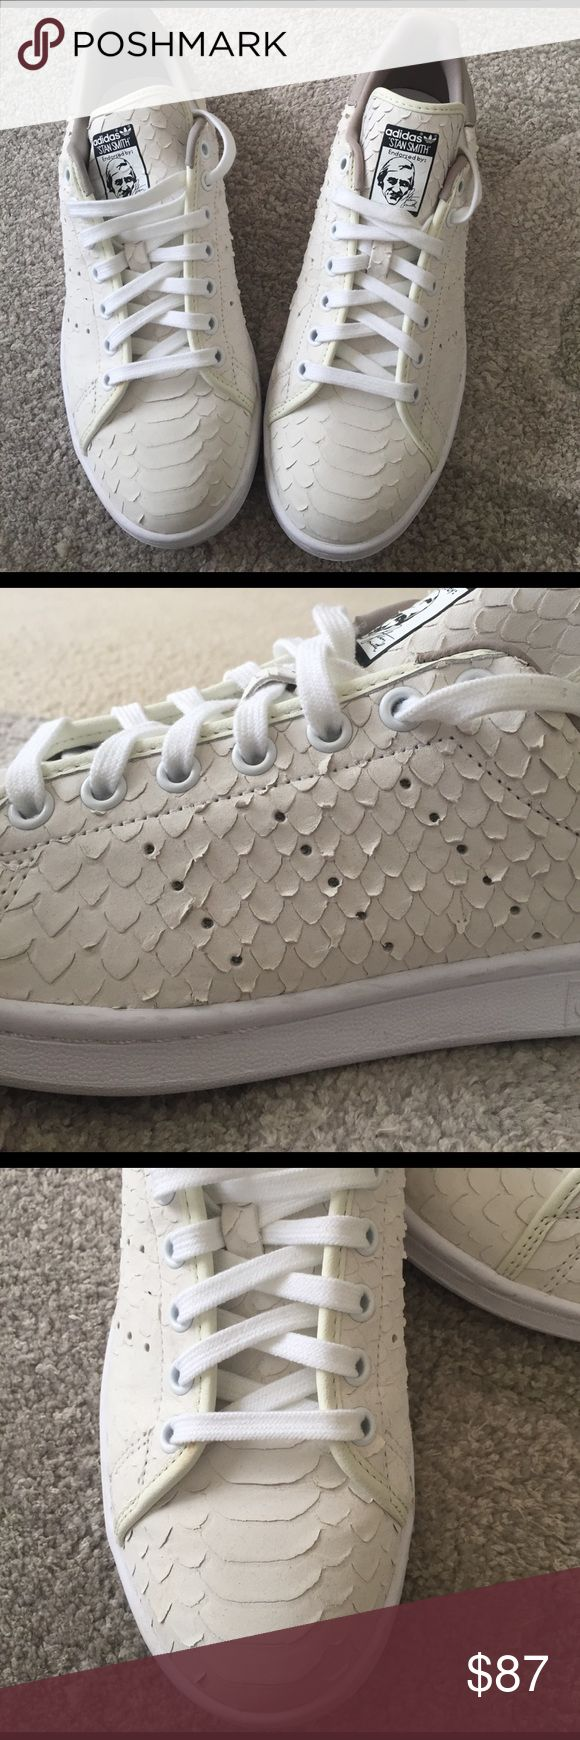 Adidas Stan Smith sneakers Size 10 women's eggshell colored soft snake skin sneakers. Worn once! (Max 2 hours). Clean base and laces. Super comfortable and trendy. Adidas Shoes Sneakers